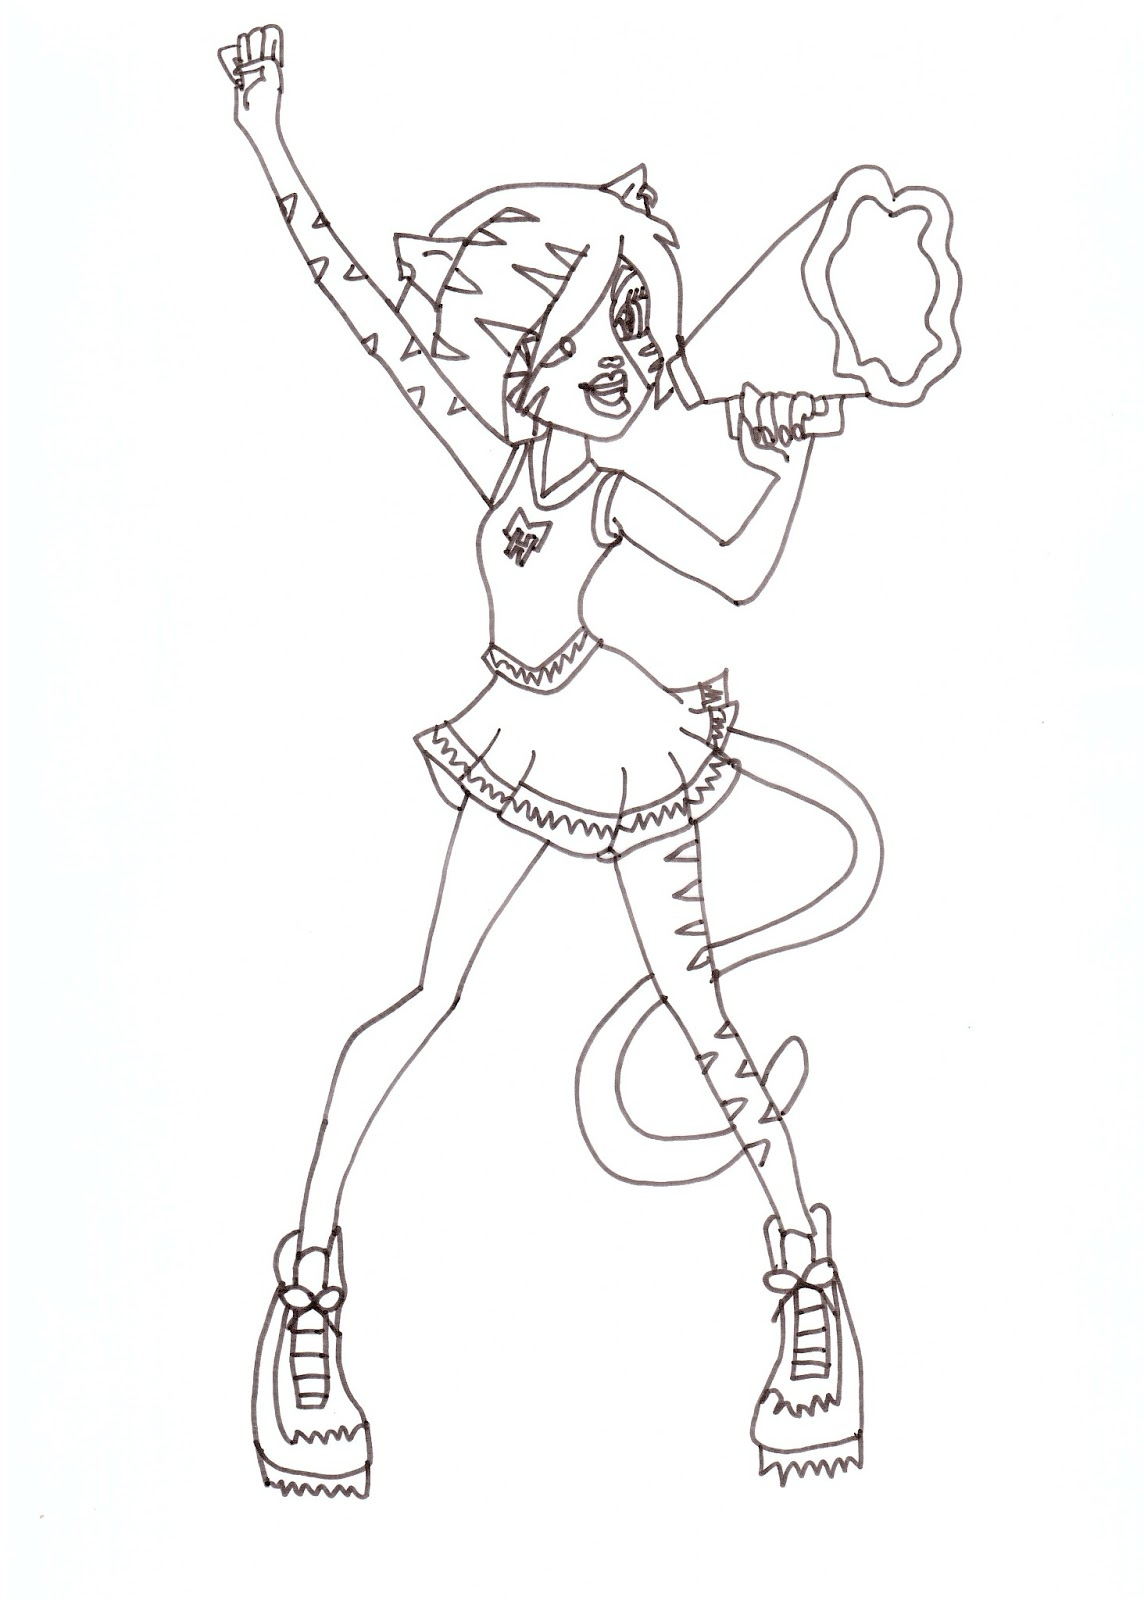 Monster High Printable Coloring Pages Abbey Colorings Download Of Inspiring Monster High Coloring Pages Colouring Sheets Printables Gallery